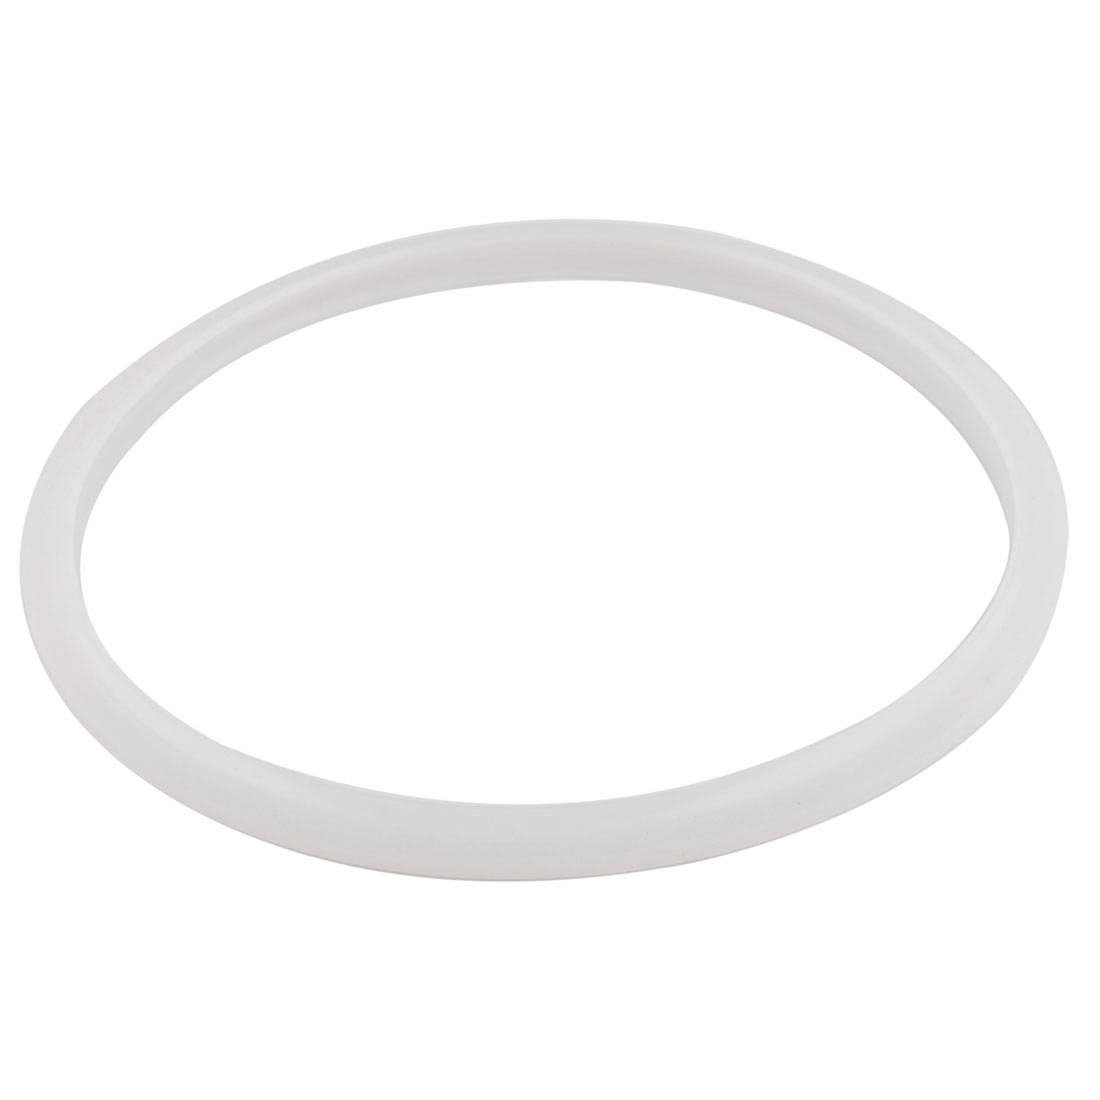 Household Kitchen Rubber Pressure Cooker Seal Sealing Ring 7.1 Inches Inner Dia